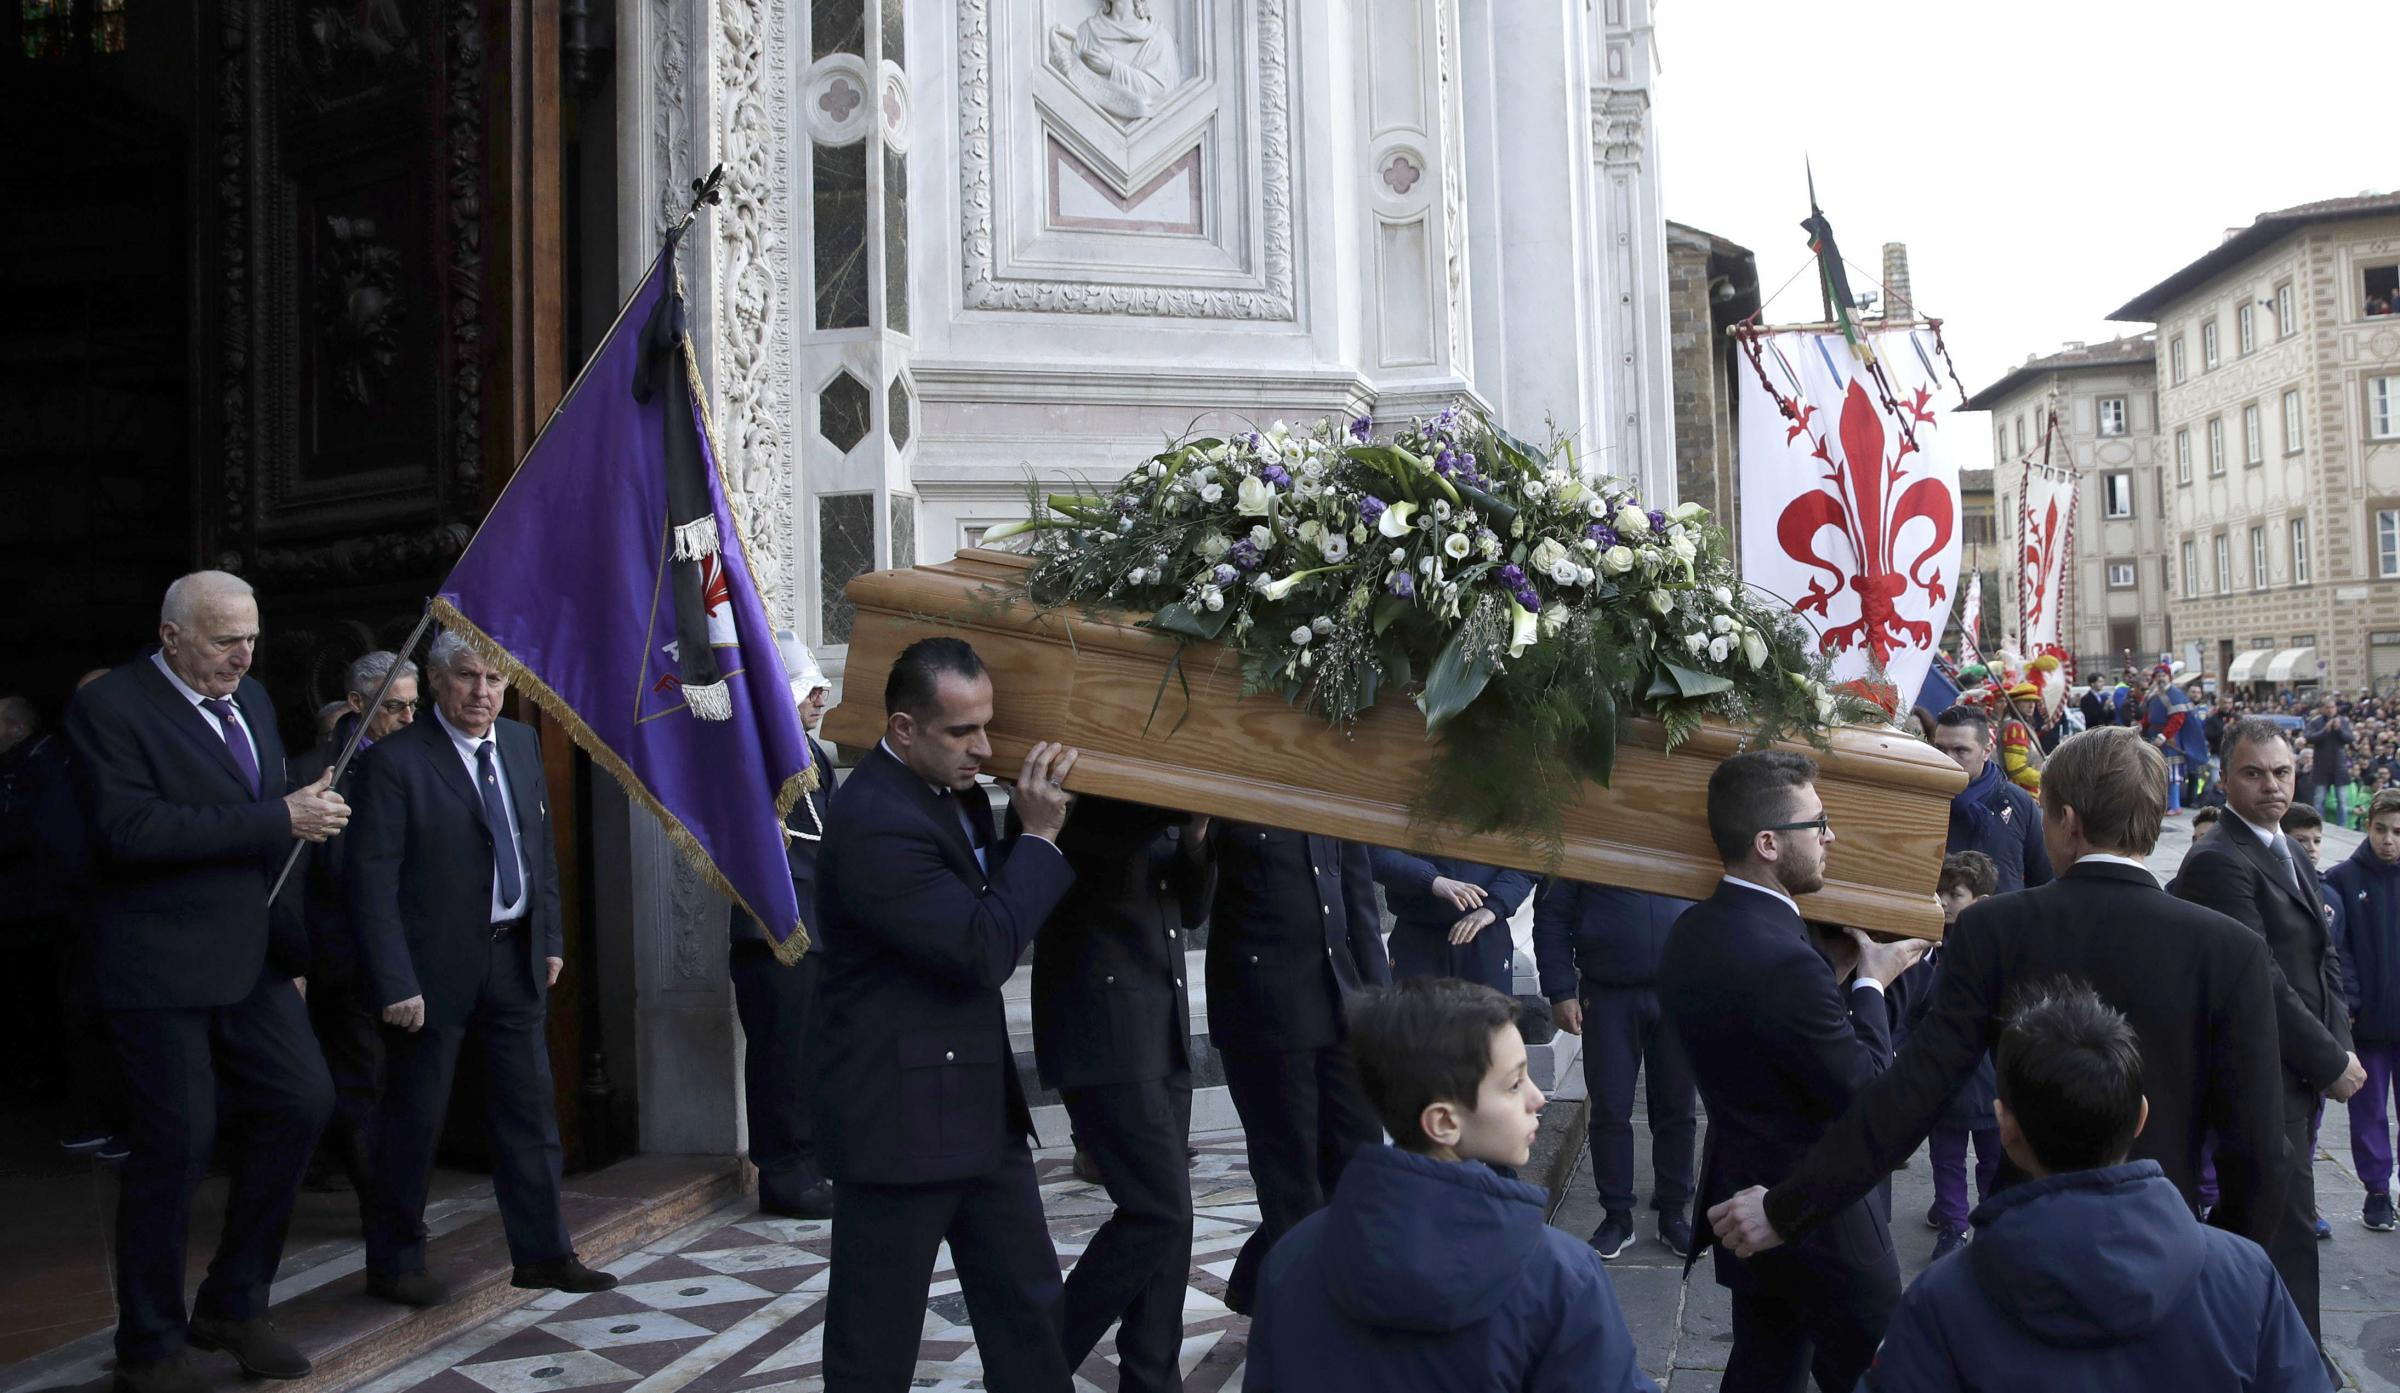 The coffin leaves the church at the end of the funeral ceremony of Italian player Davide Astori. Photograph: AP